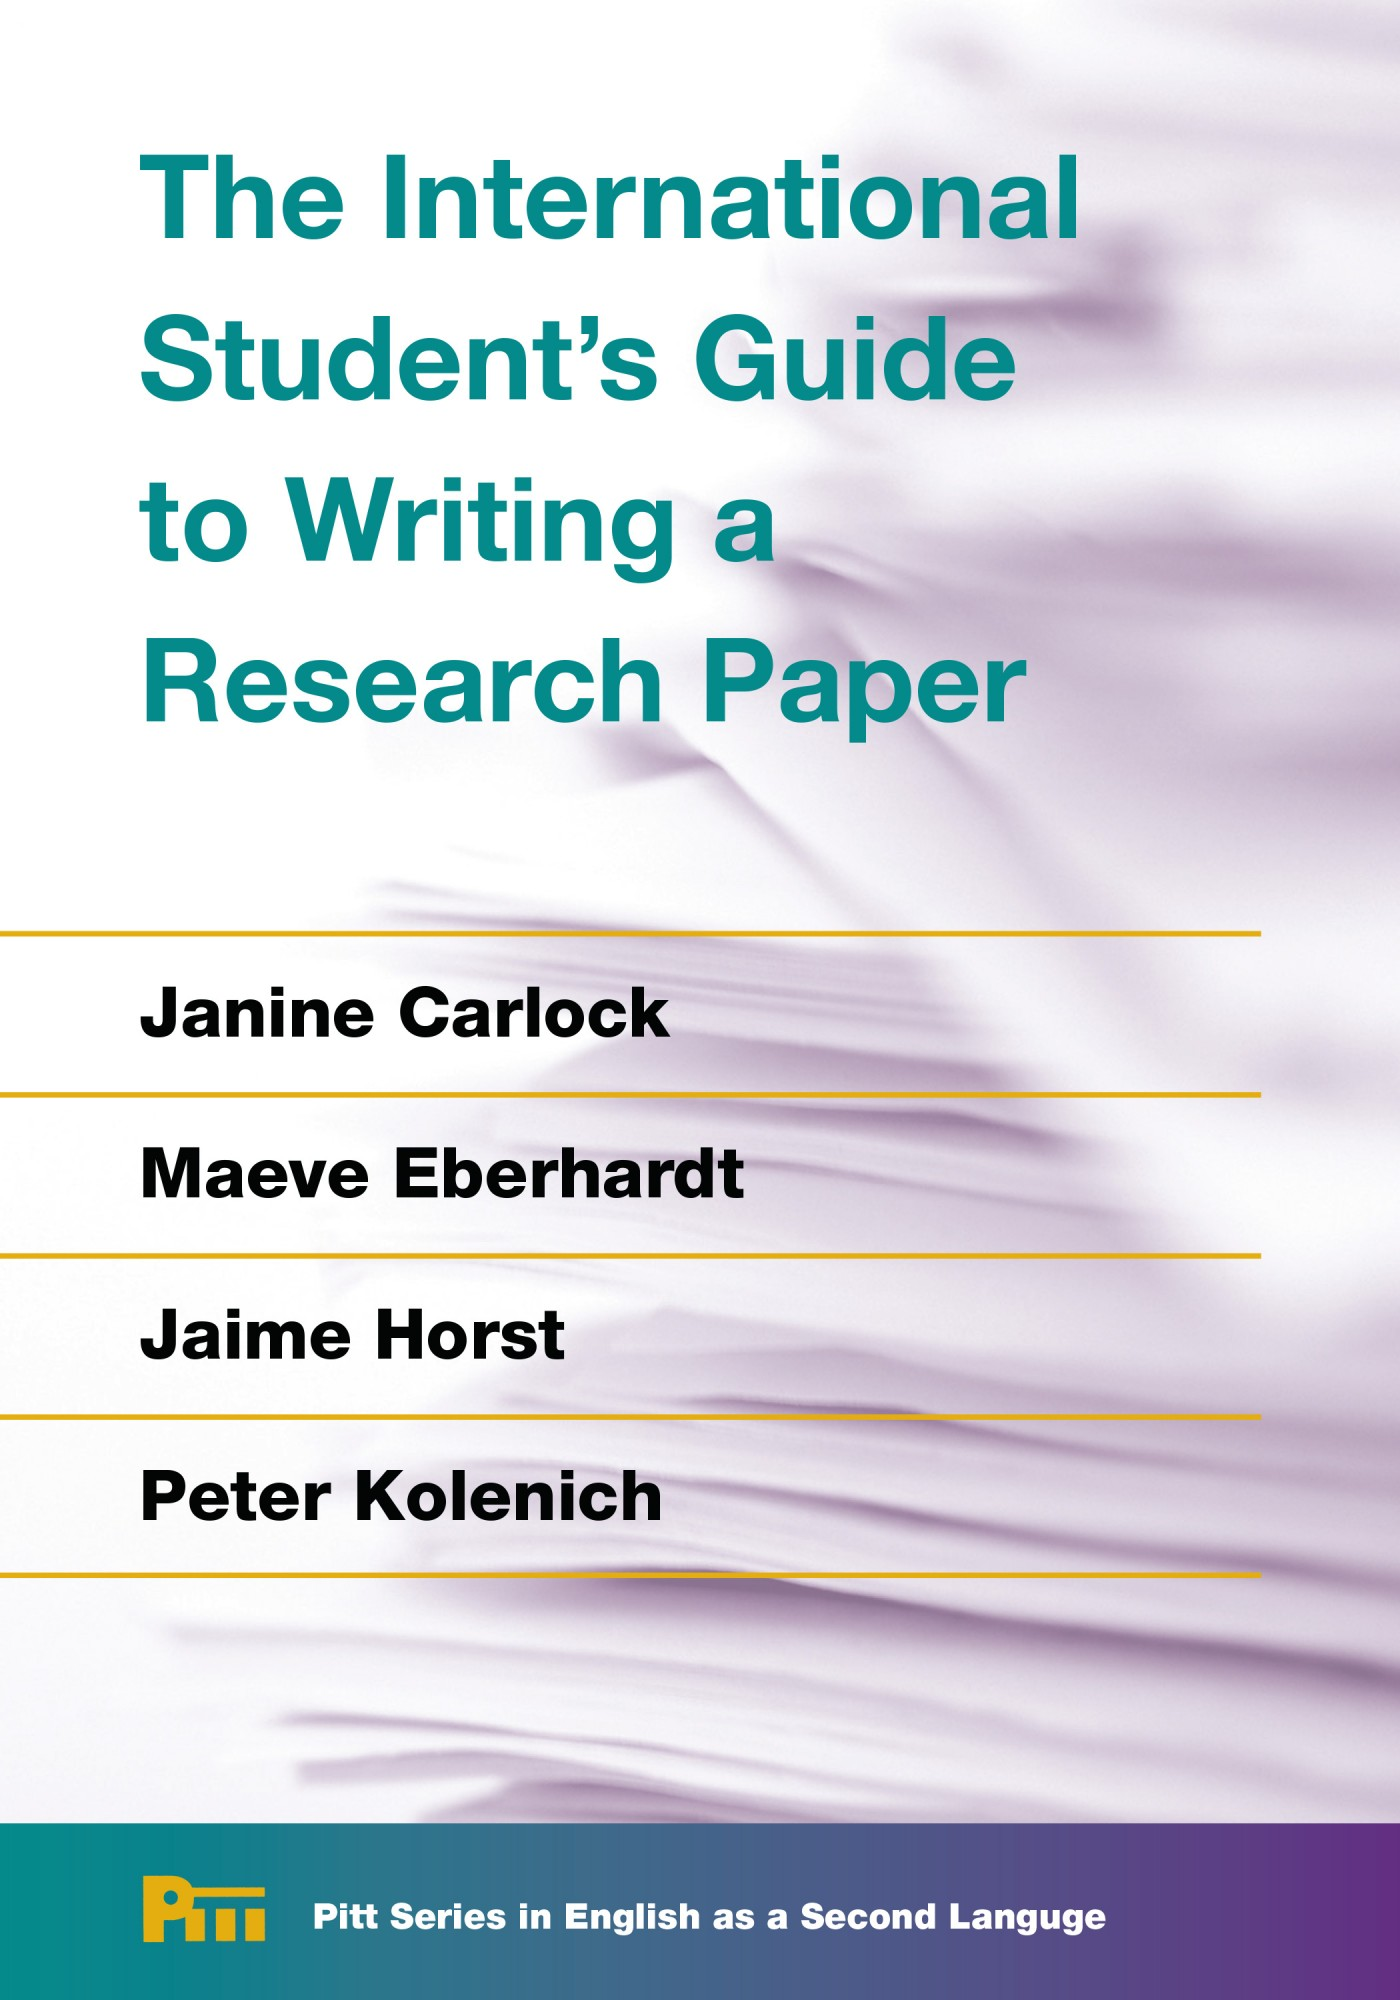 013 Writing The Research Paper Phenomenal How To Write A Outline Mla Papers Complete Guide 16th Edition Pdf Free 1400